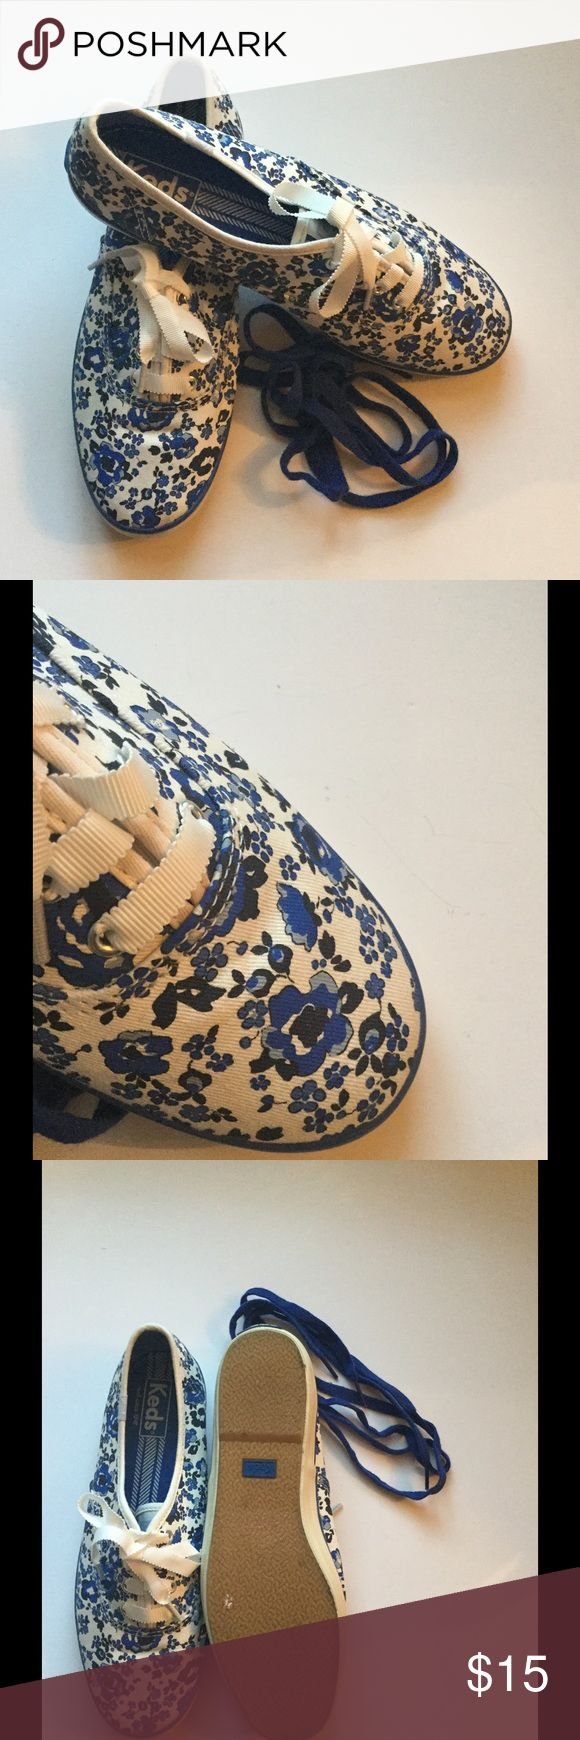 Keds Floral Tennis Shoes Keds blue floral tennis shoes, clean, like new condition, warn only a couple of times, comes with white and blue laces Keds Shoes Sneakers